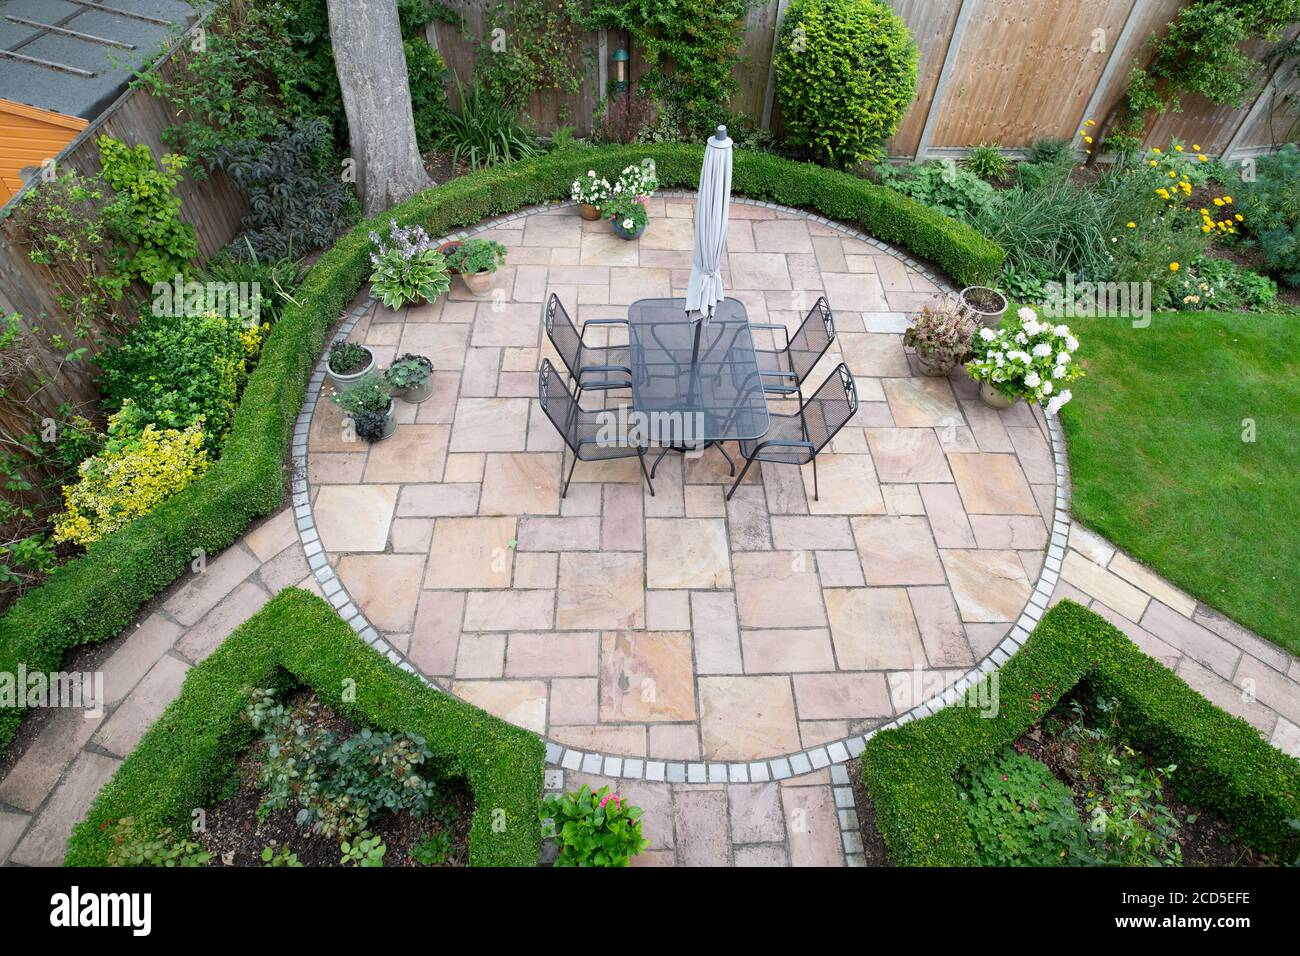 https www alamy com circular garden patio with freshly jet washed paving stones image369529426 html